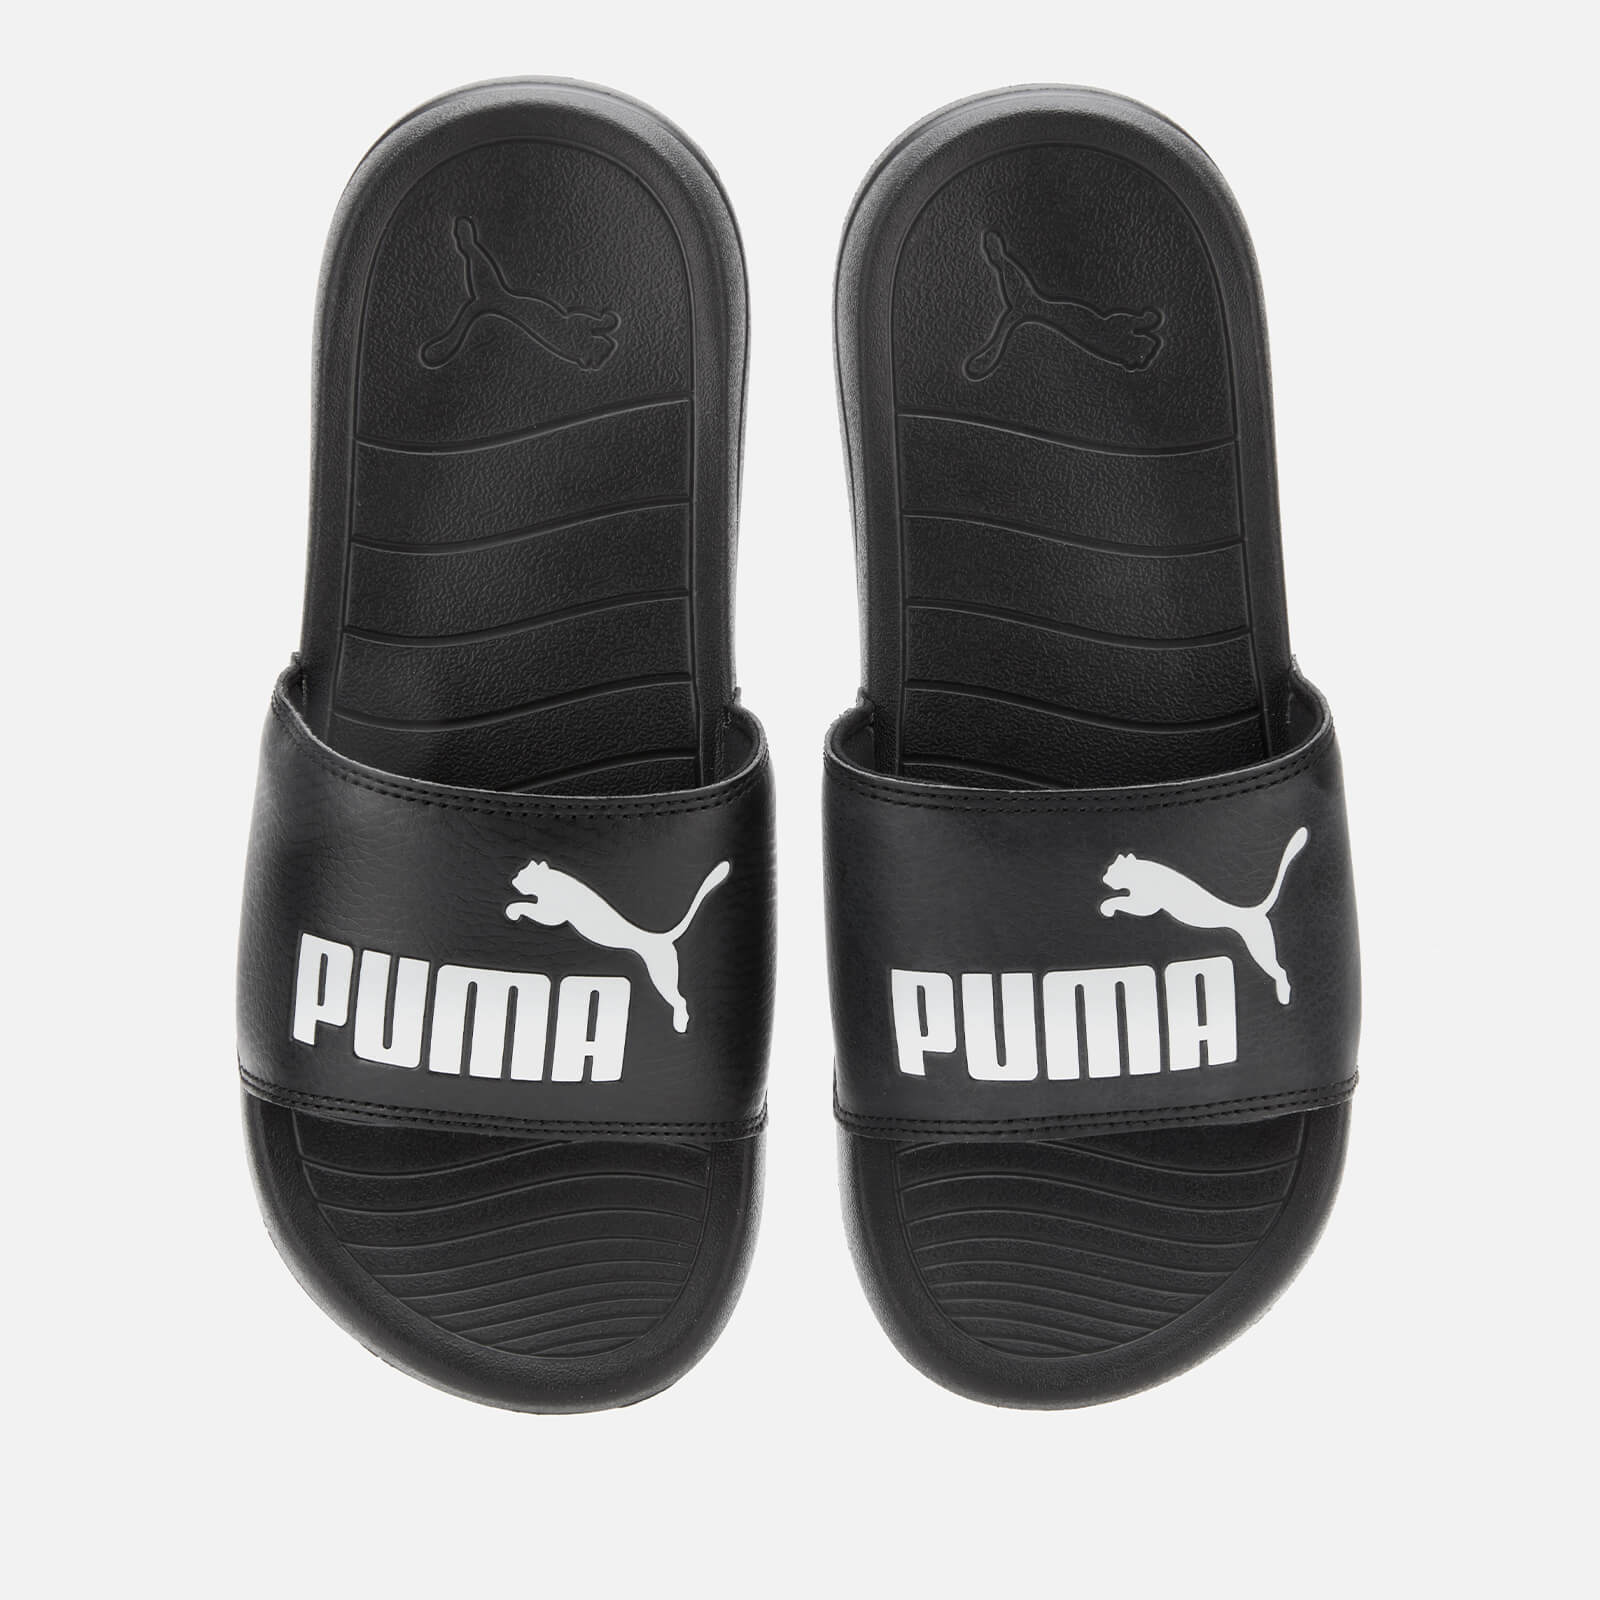 Click to view product details and reviews for Puma Mens Popcat 20 Slide Sandals Puma Black Puma White Uk 8 Black.